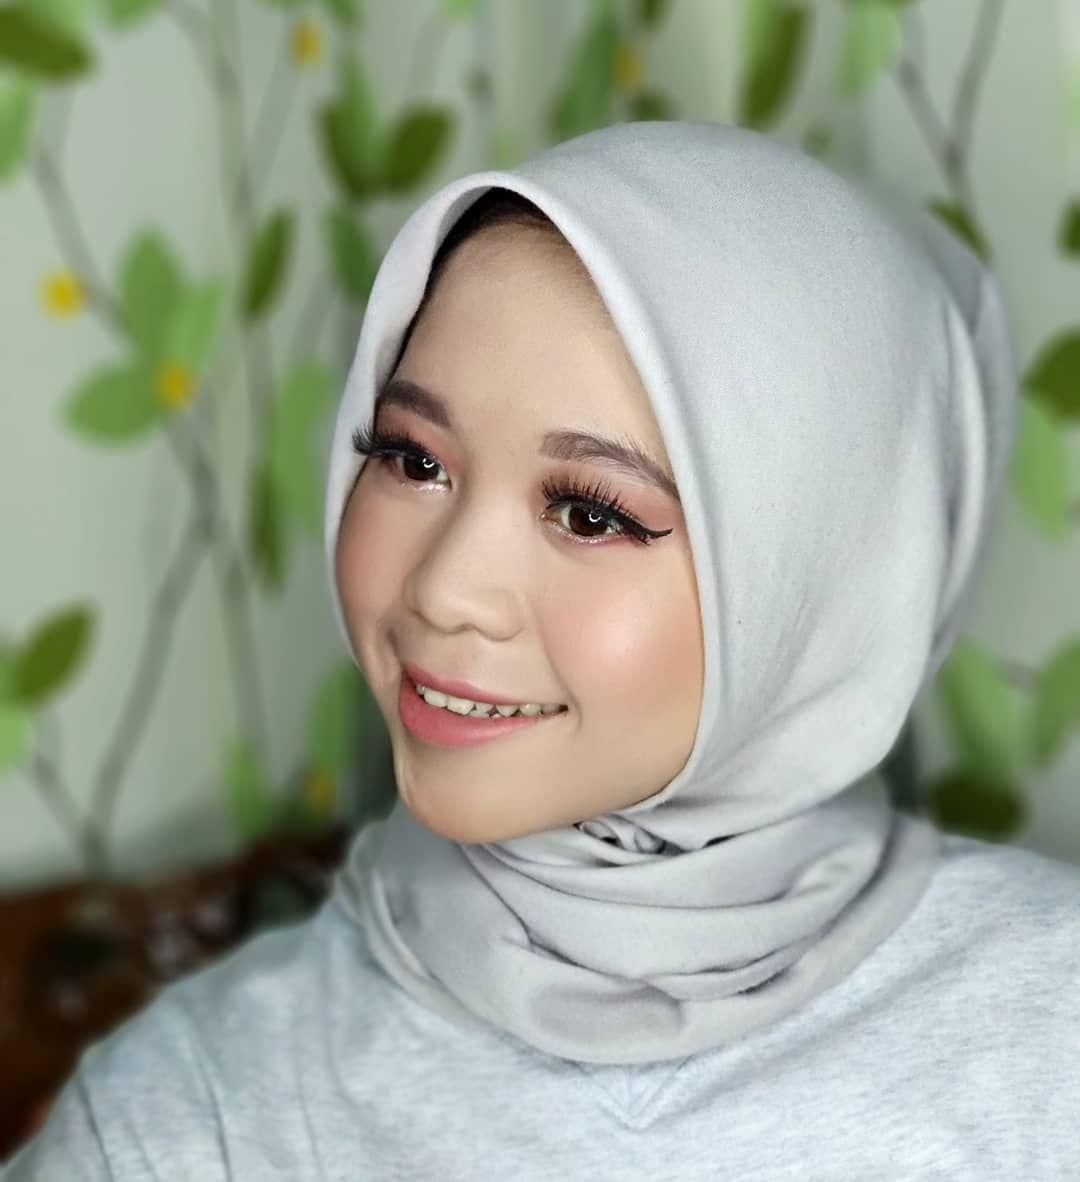 New The 10 Best Makeup With Pictures By Team Afsy Retouch By Me Makeup Makeupwisuda Makeupnatural Makeupparty Makeupartist Makeupbandung M Makeup